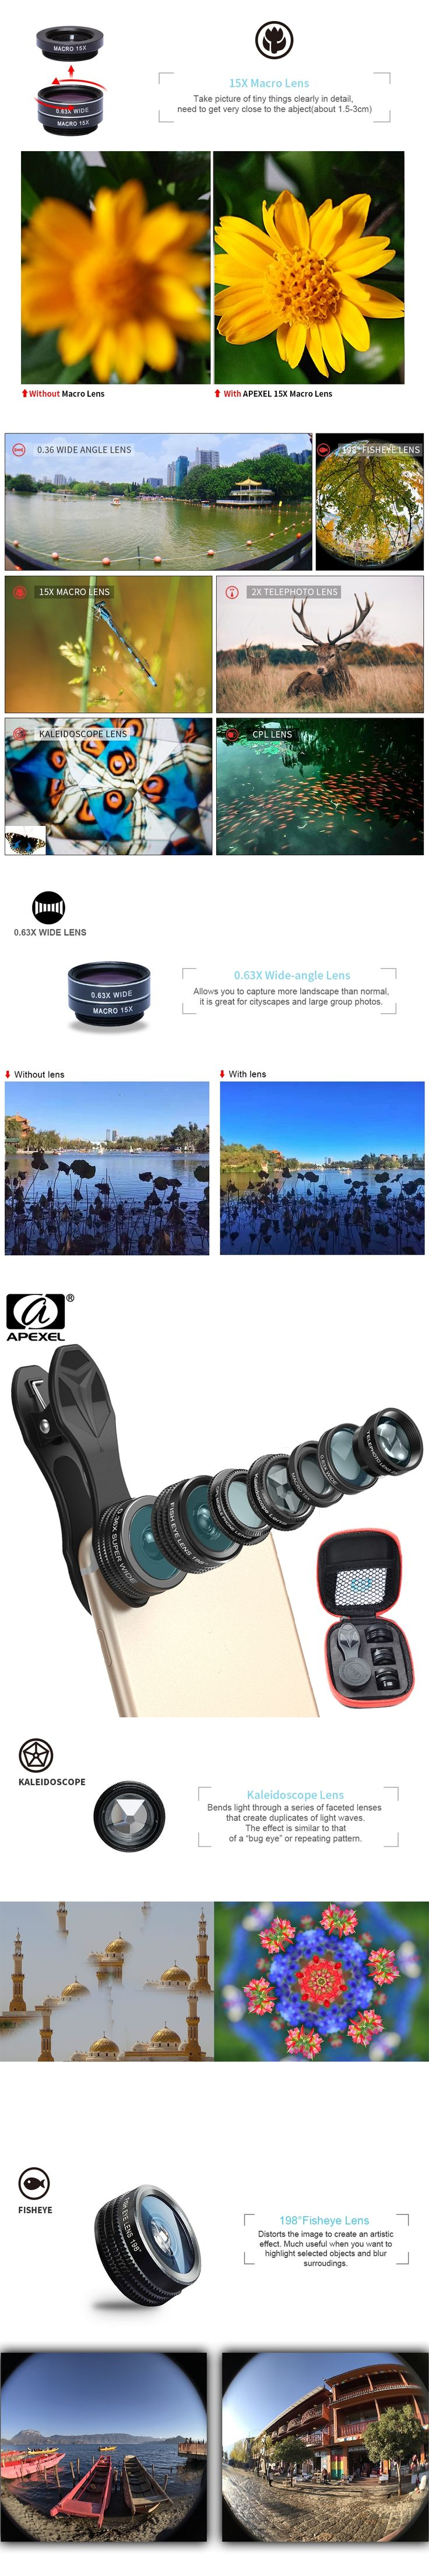 APEXEL 7 in 1 Phone Camera Lens Kit Fish Eye Wide Angle/macro Lens CPL Kaleidoscope and 2X telephoto zoom Lens for iPhone5/6s/7